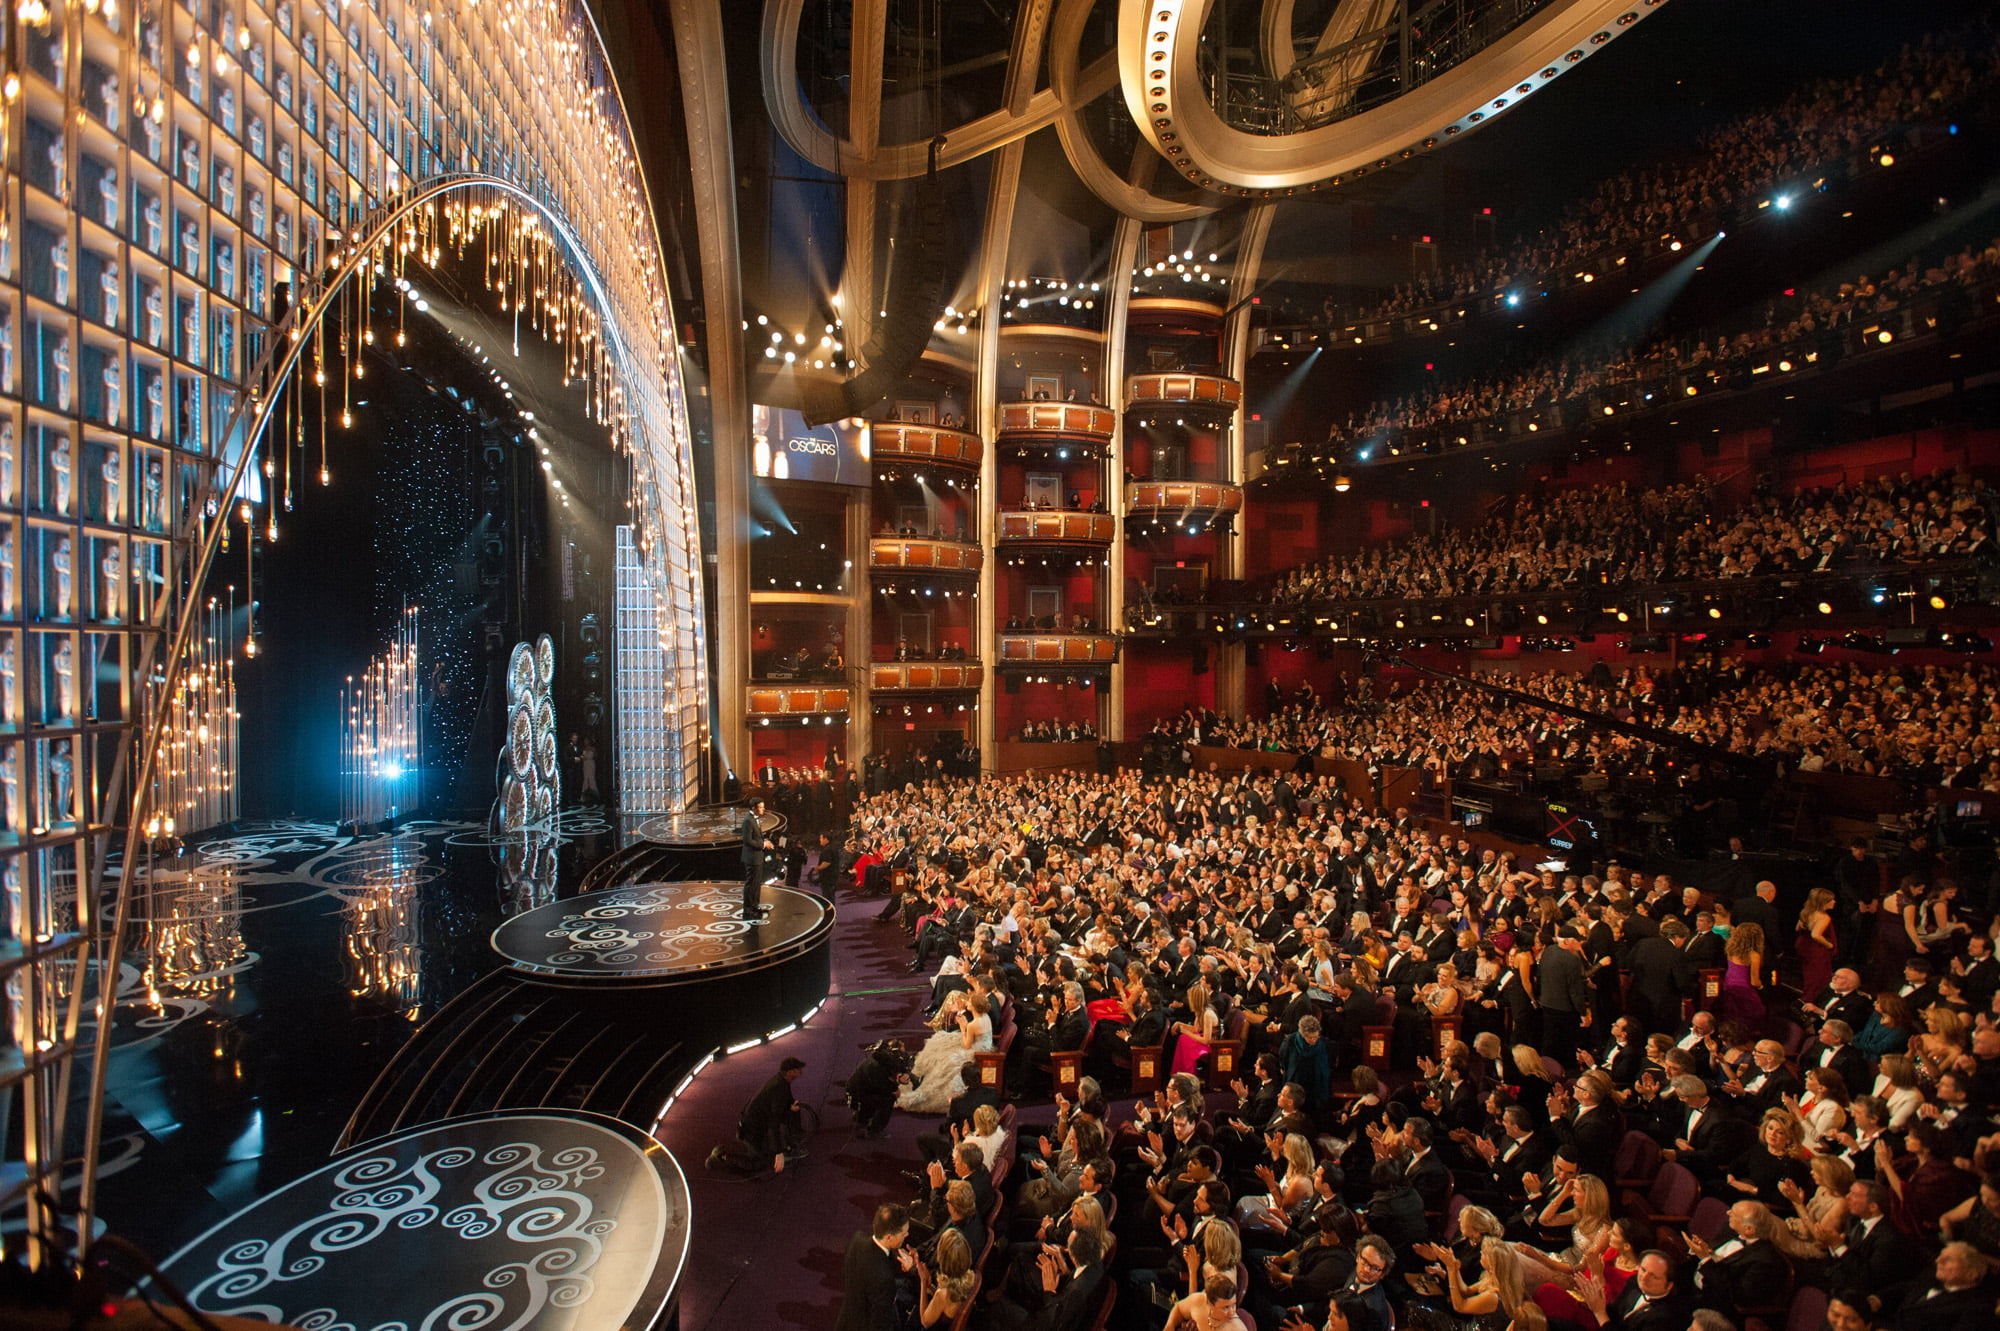 Inside the Dolby Theatre